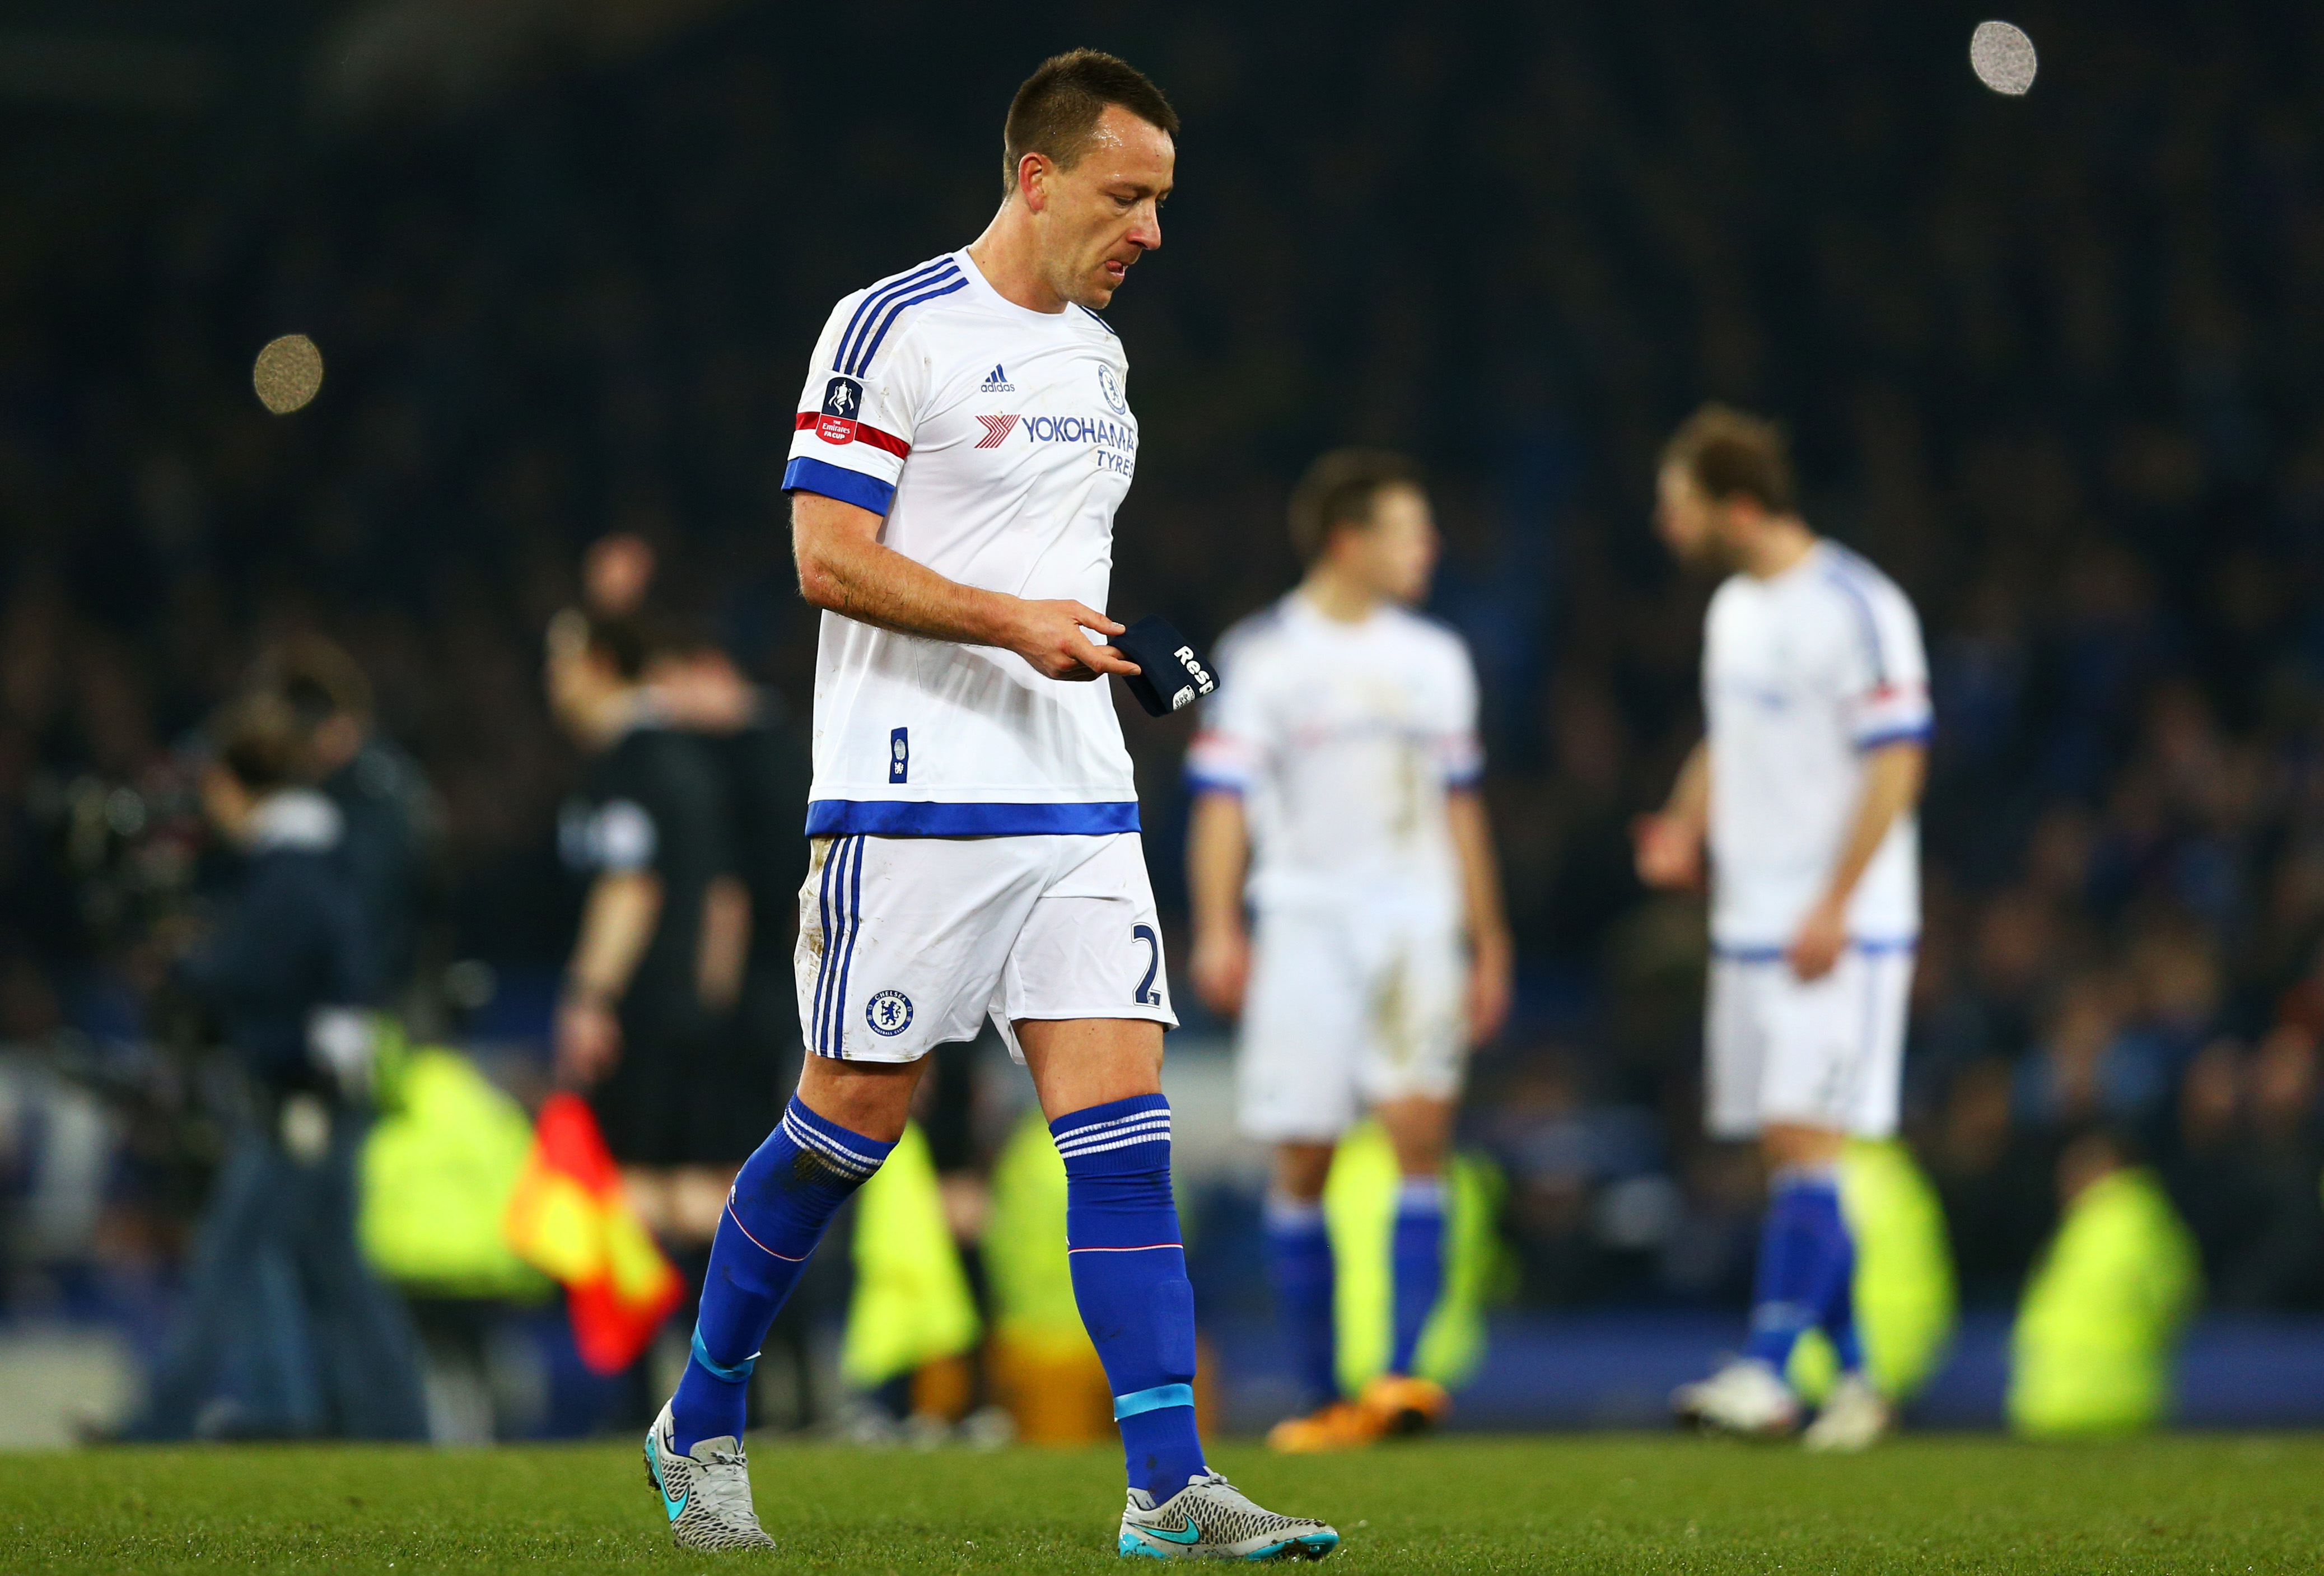 Guus Hiddink confirms Chelsea captain John Terry likely fit for Tottenham clash